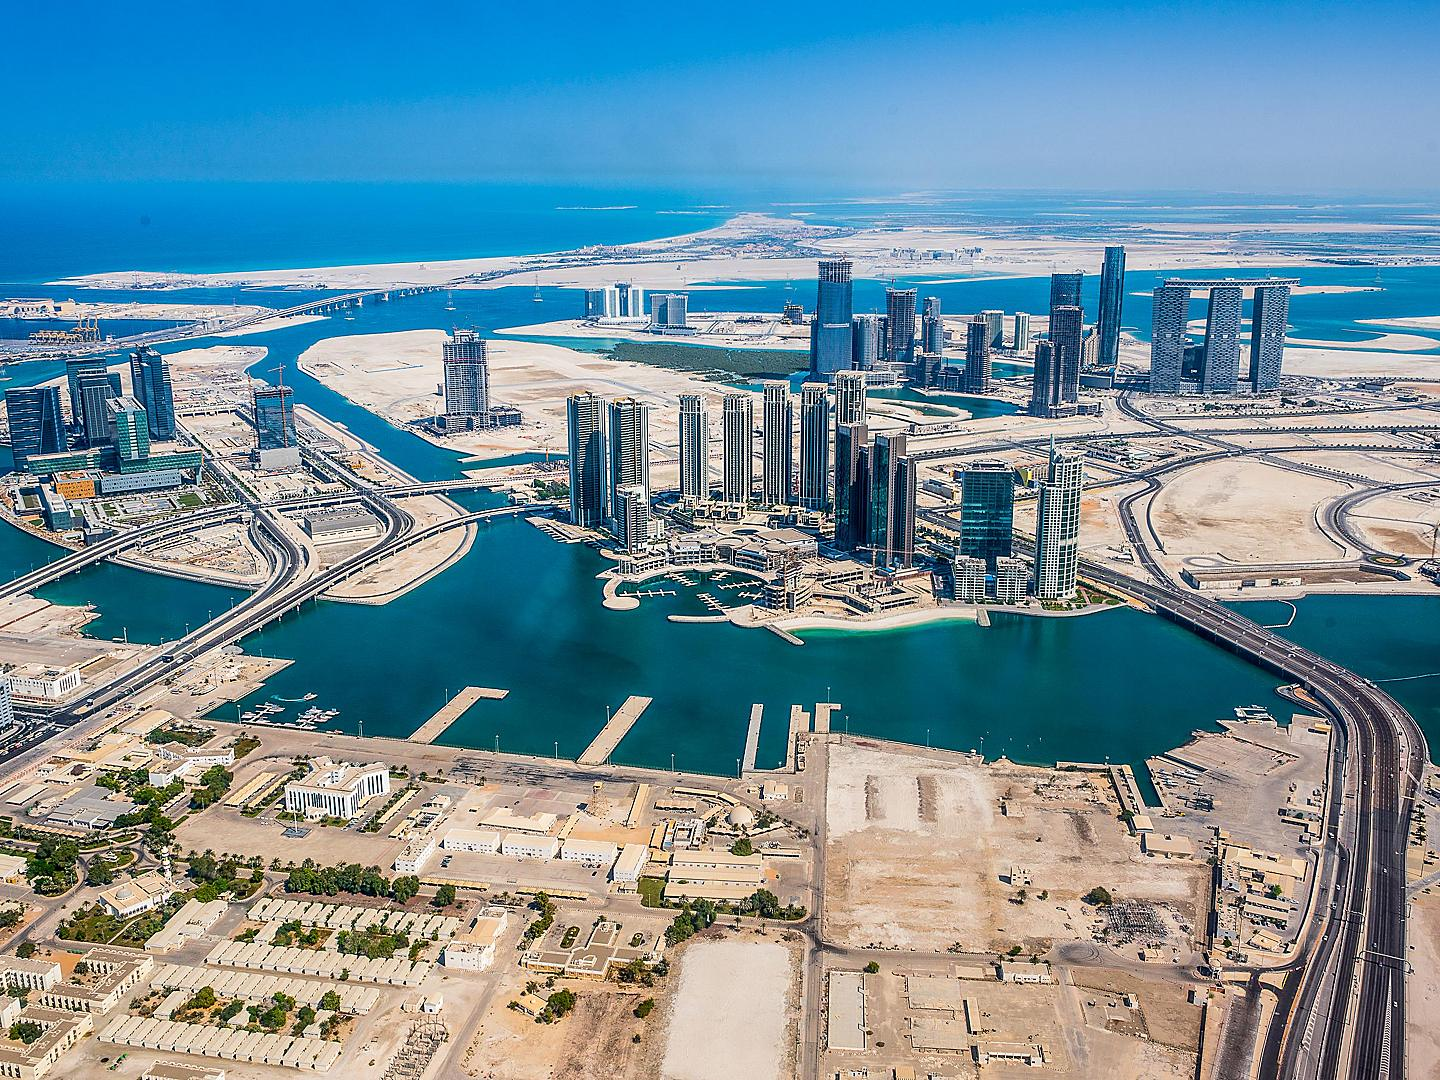 Abu Dhabi, United Arab Emirates Aerial View